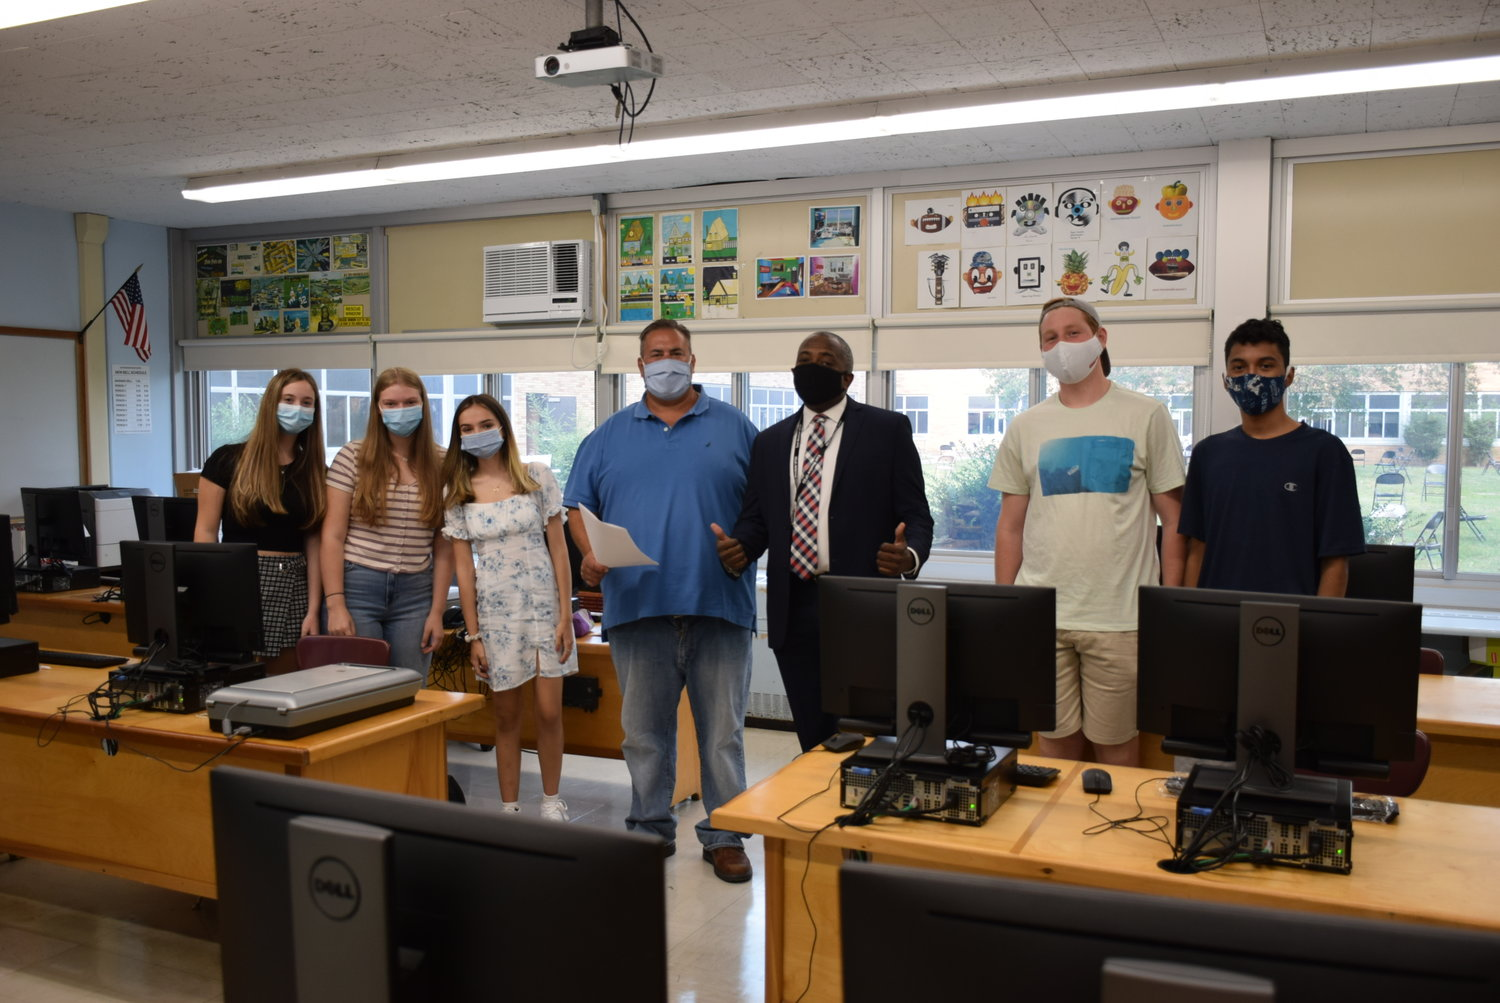 Superintendent Kenneth Card Jr. visited Samuel Joseph's multimedia class at East Meadow High School during their first day of school on Sept. 8.